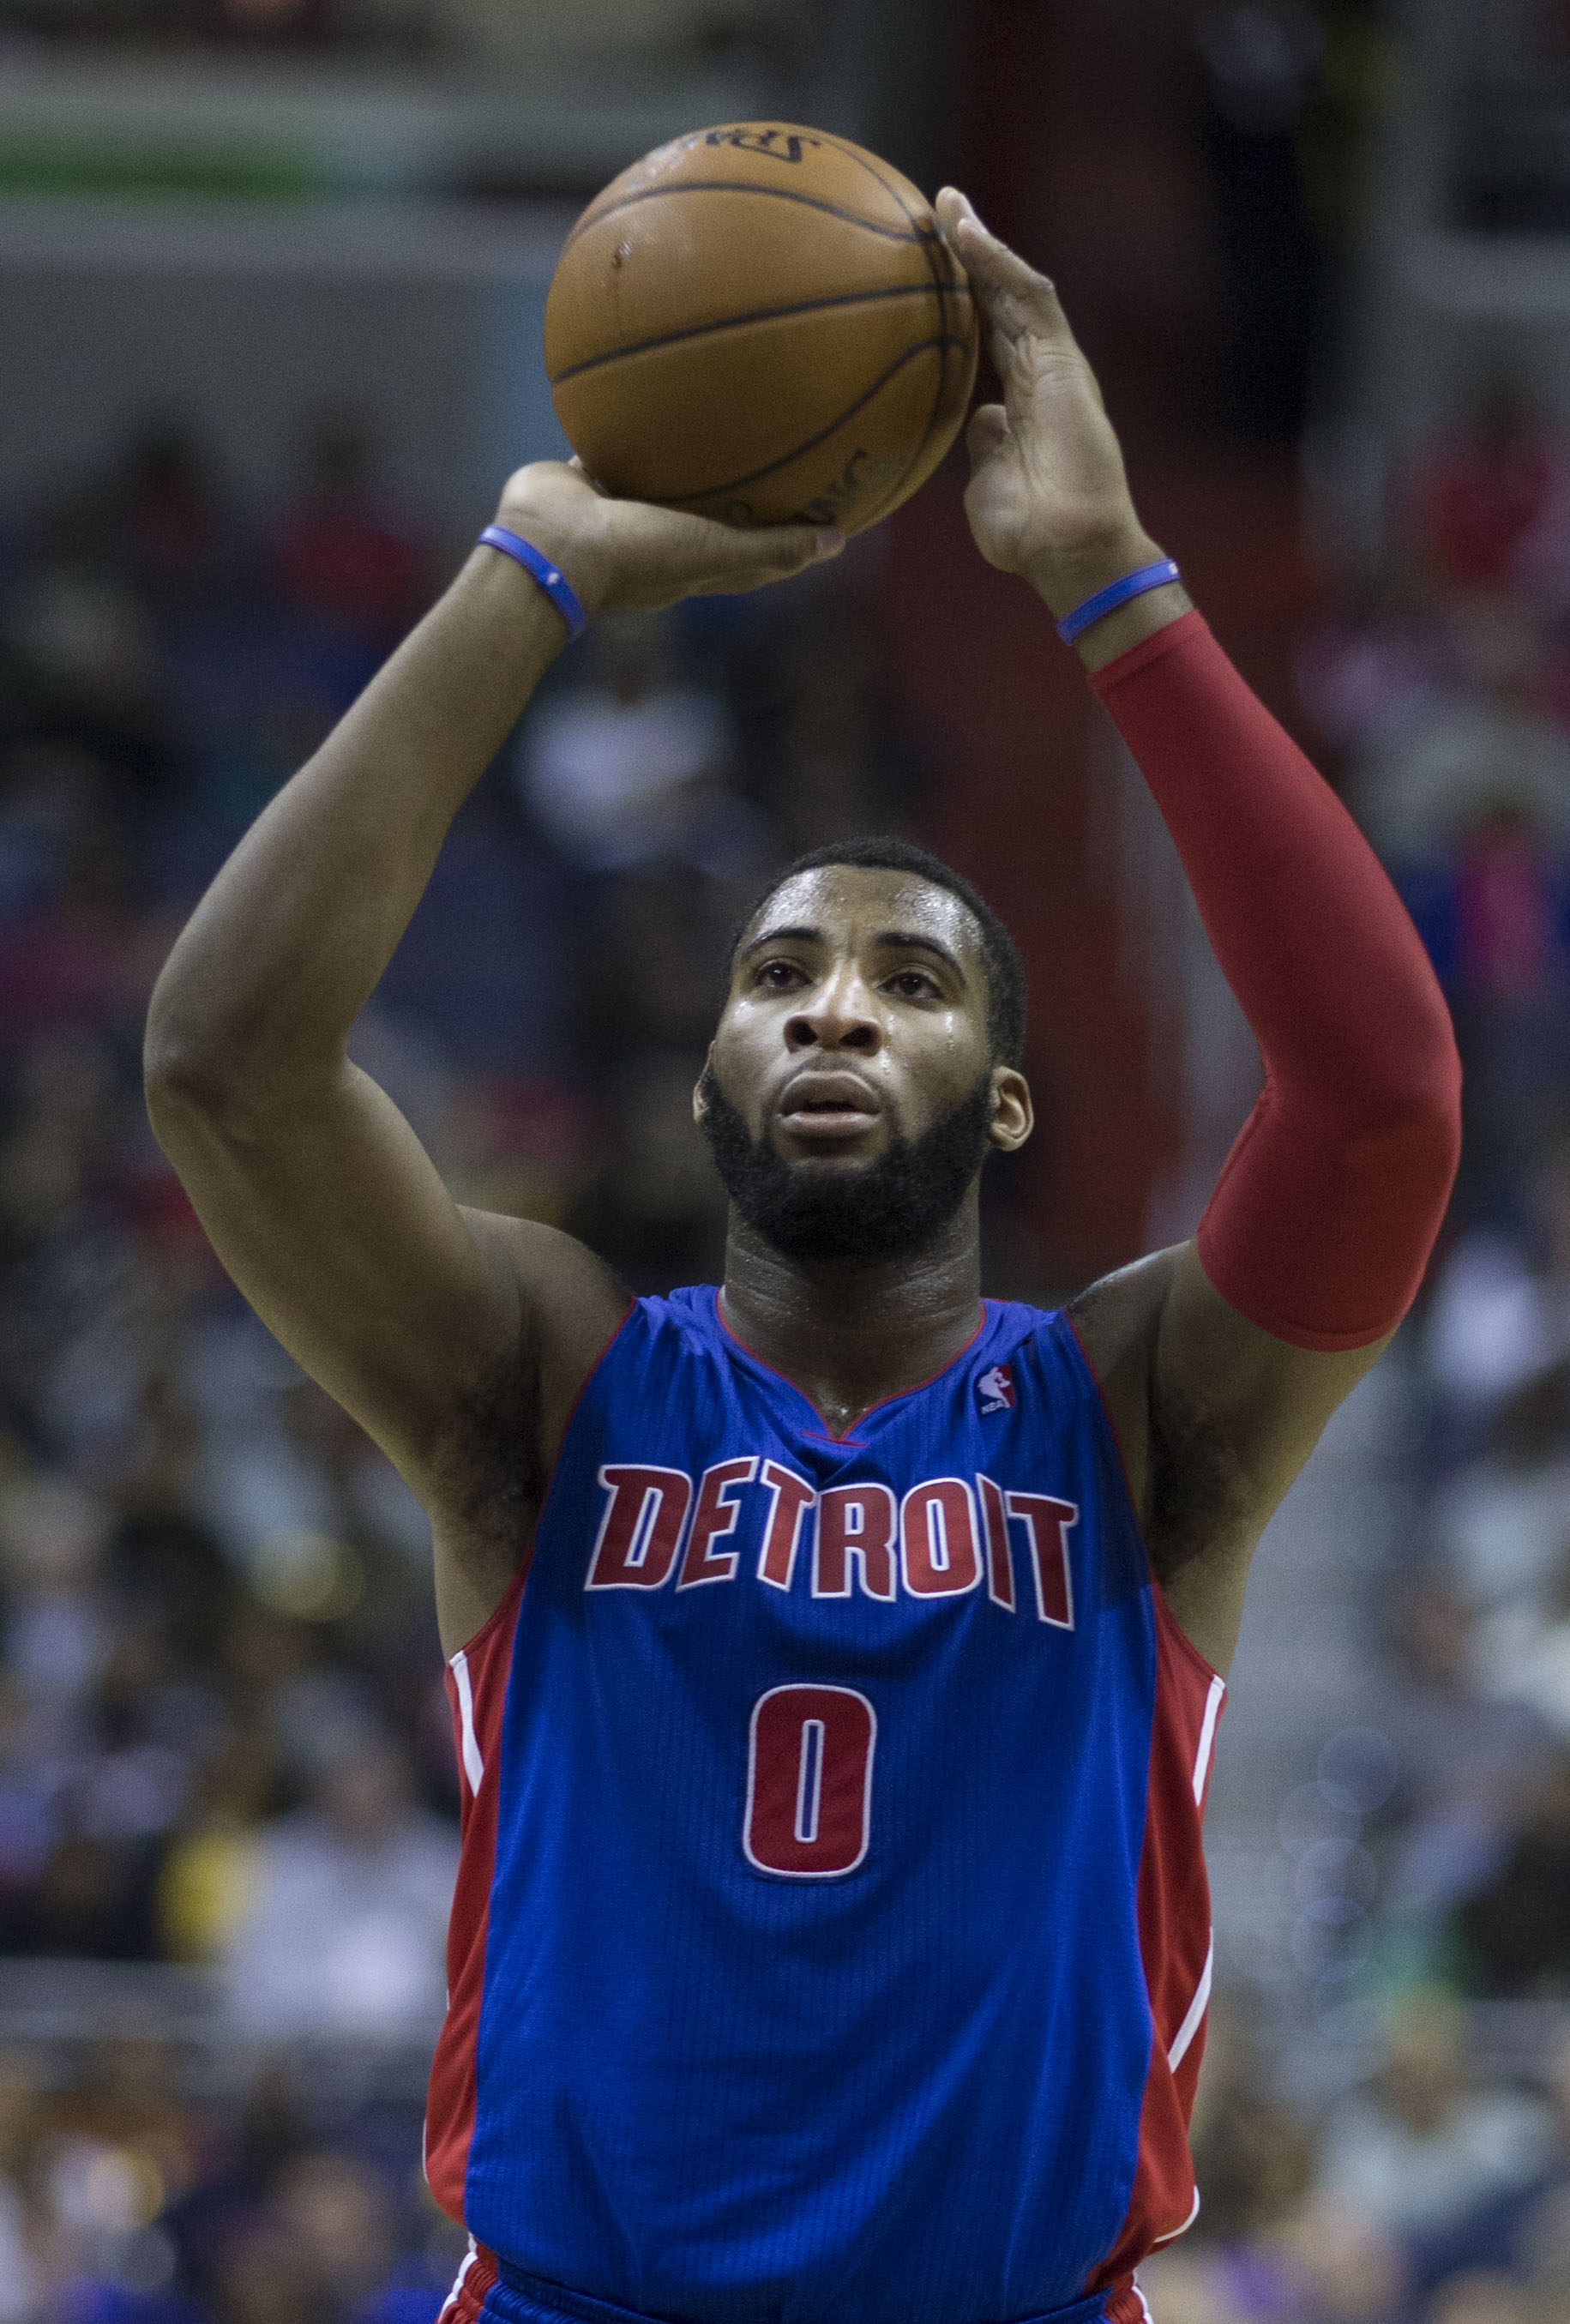 The 25-year old son of father (?) and mother(?) Andre Drummond in 2018 photo. Andre Drummond earned a 2 million dollar salary - leaving the net worth at 7.3 million in 2018